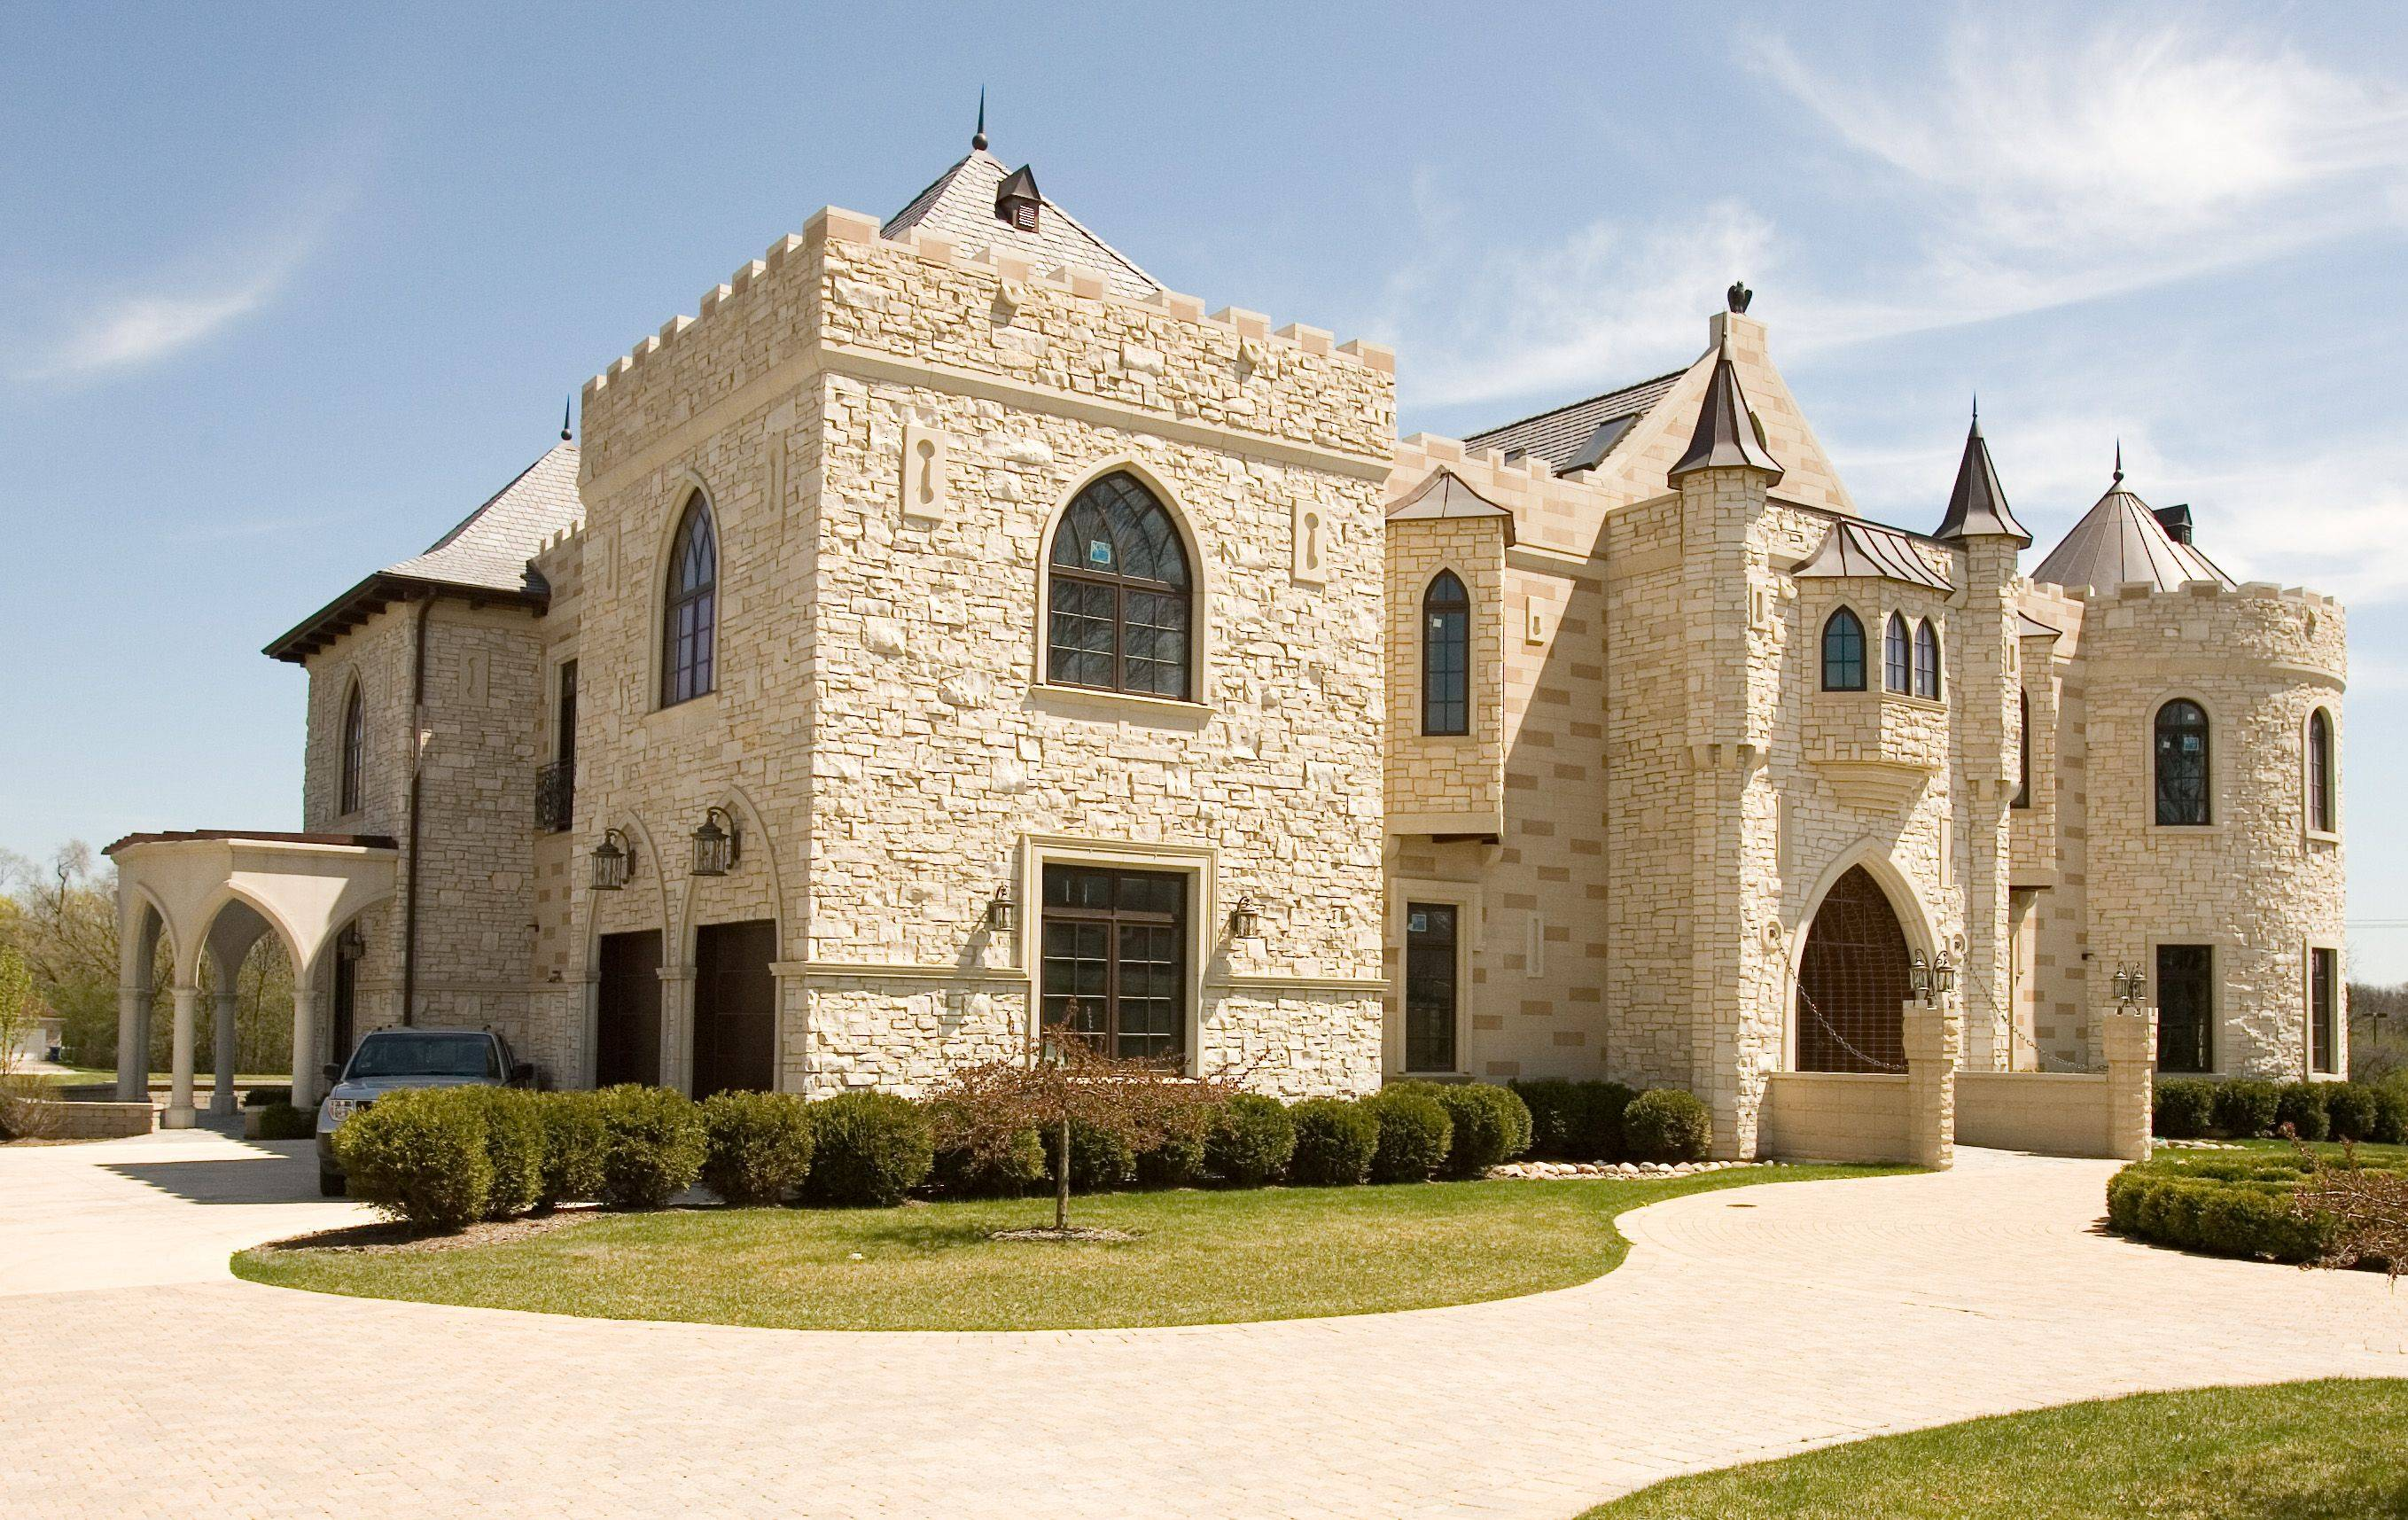 If you're looking to buy a home for, oh, about $5 million, you may want to consider this castle-like structure near 31st Street, just west of York Road in Oak Brook.